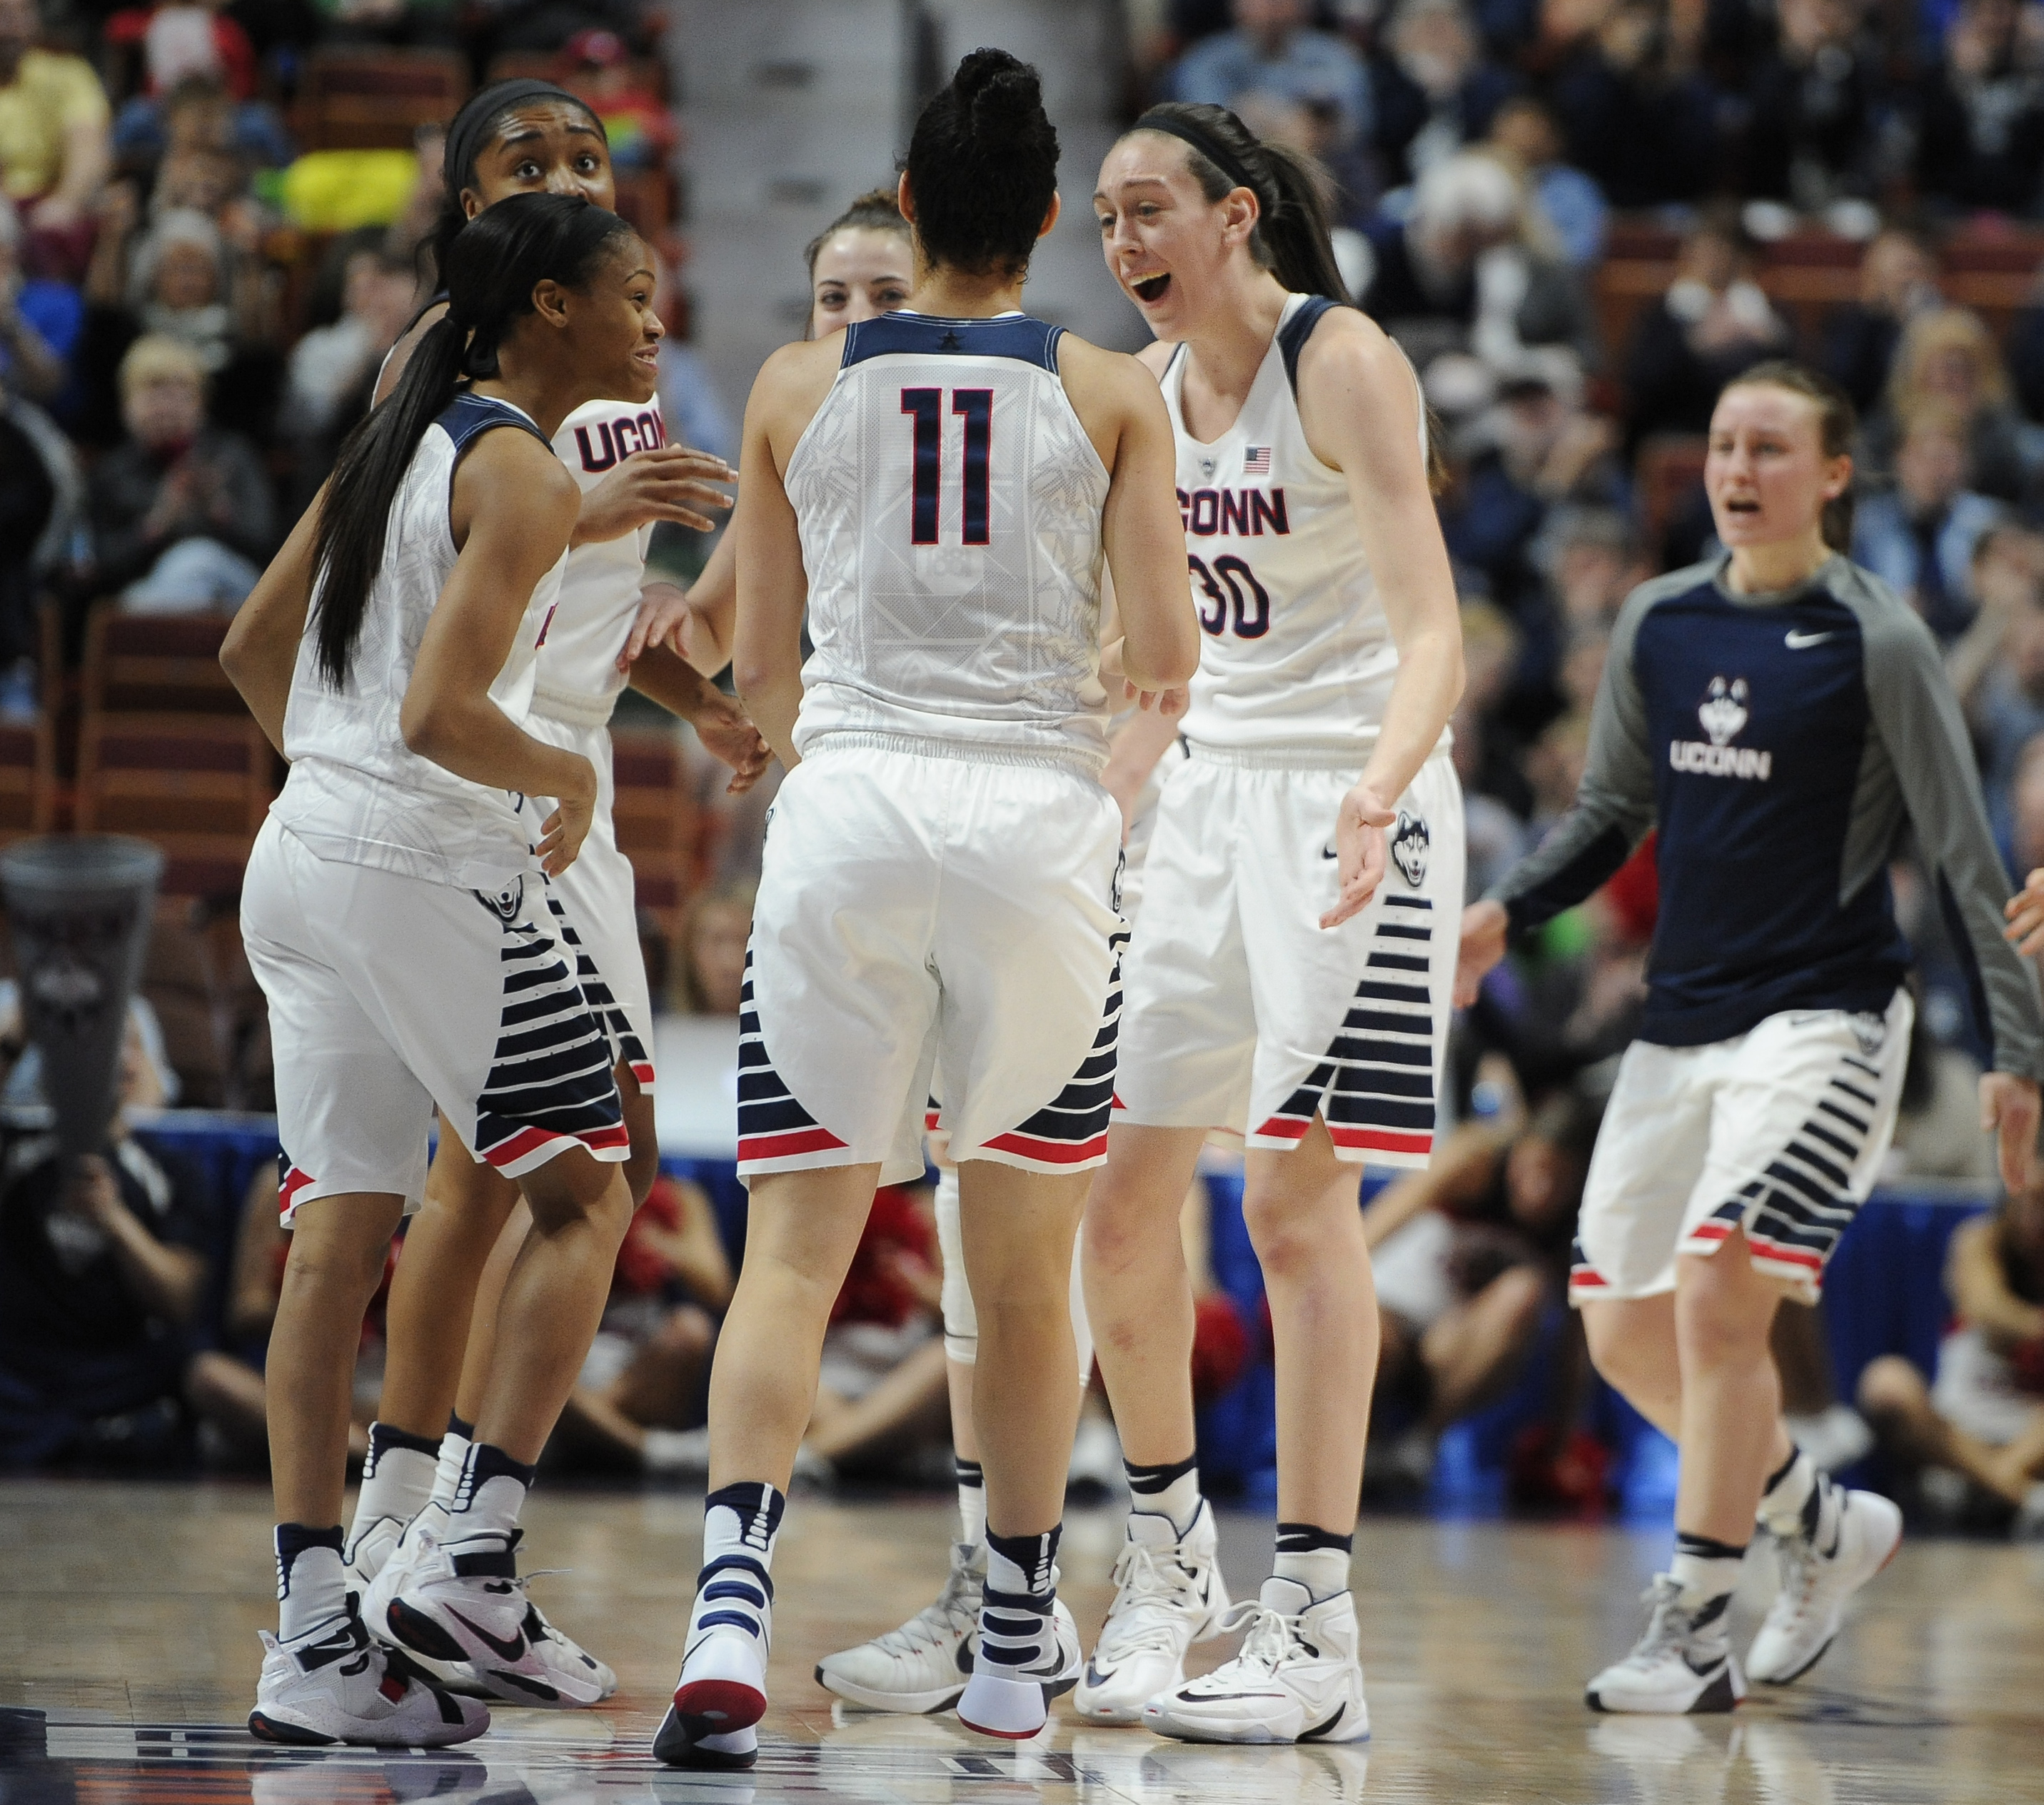 Connecticut's Breanna Stewart, right, reacts toward her team during the first half of an NCAA college basketball game in the American Athletic Conference tournament semifinals against Tulane at Mohegan Sun Arena, Sunday, March 6, 2016, in Uncasville, Conn